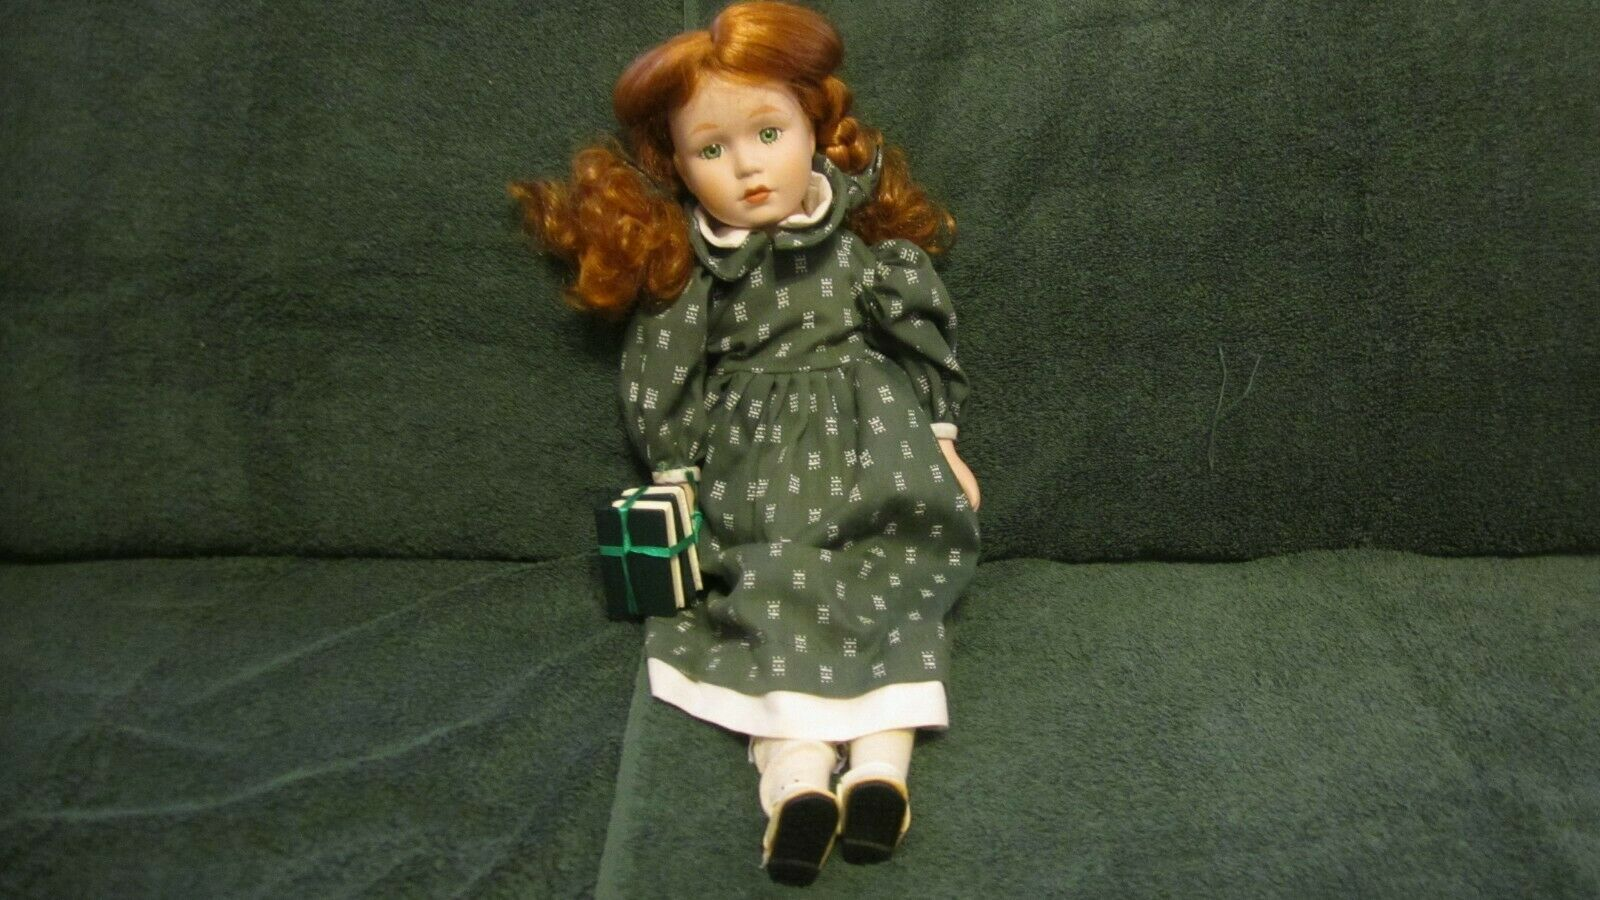 School girl porcelain doll, Doll w rot hair, Grün dress, books, Lot 2 16  dolls